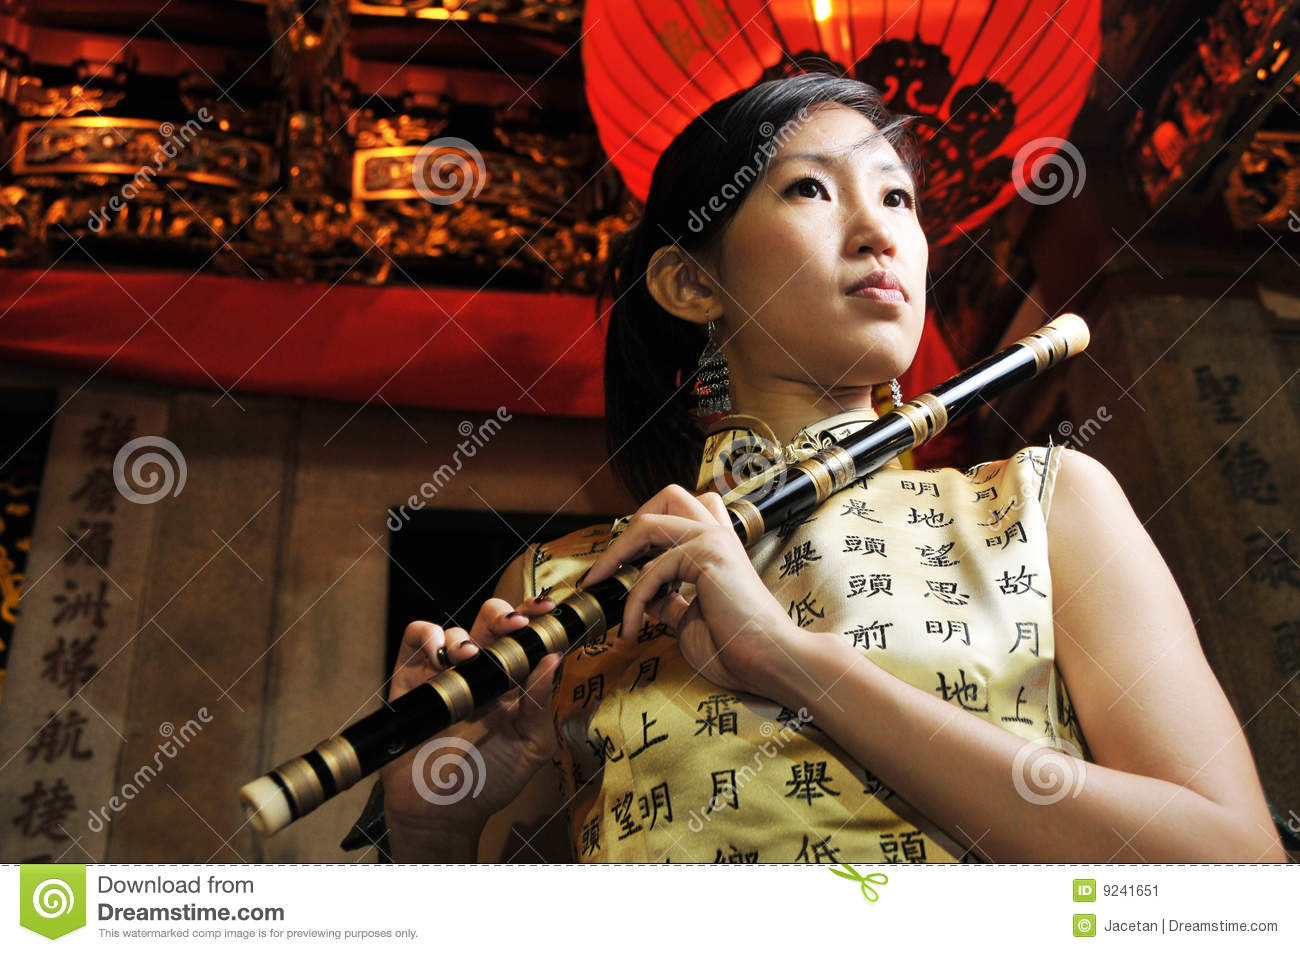 Rapids Fun asian playing flute large frequencies